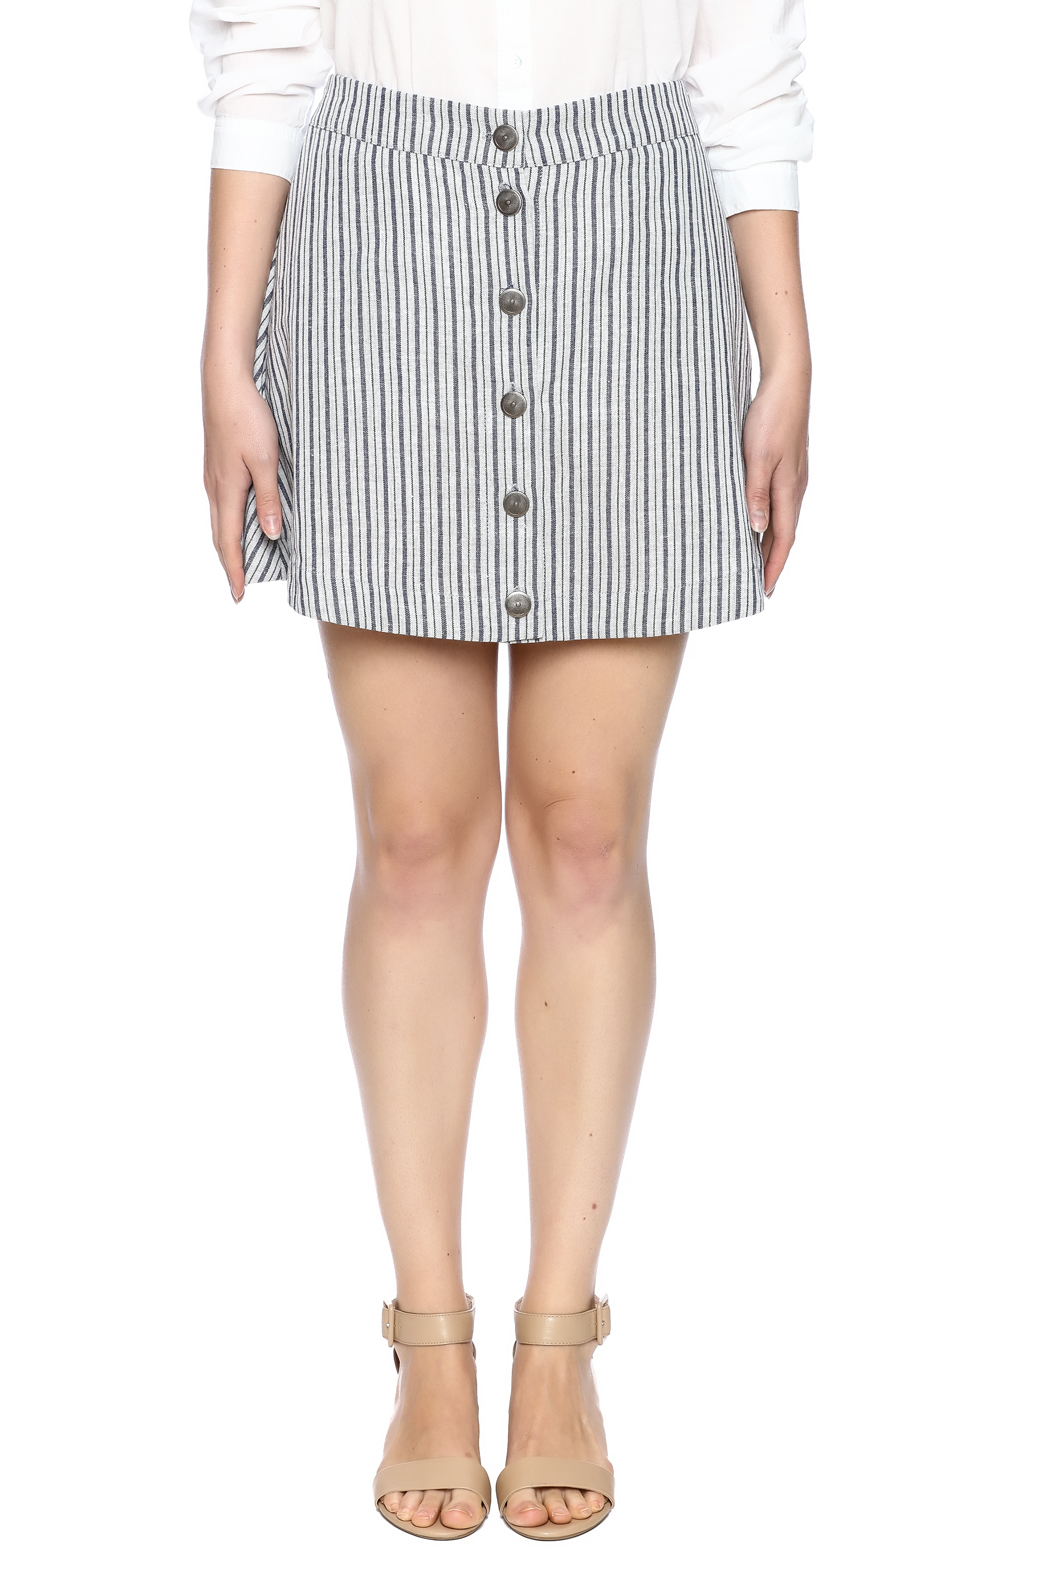 Surreal by Papercrane Striped Denim Skirt from North Carolina by ...